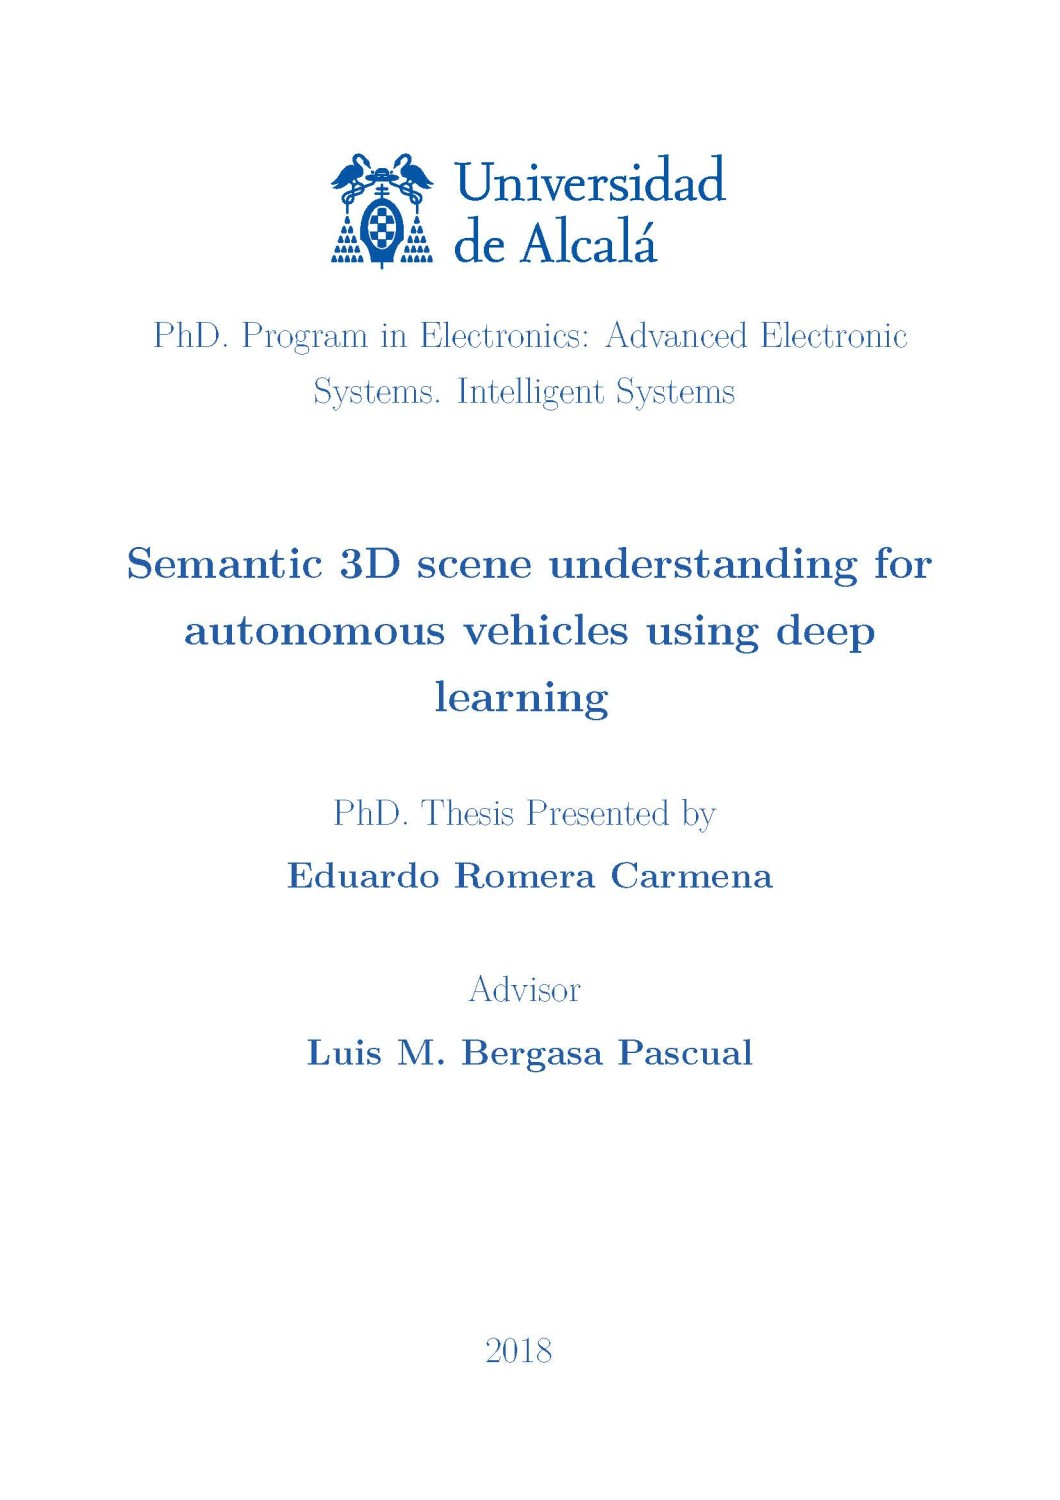 2020 Award for the best Doctoral Thesis for Eduardo Romera